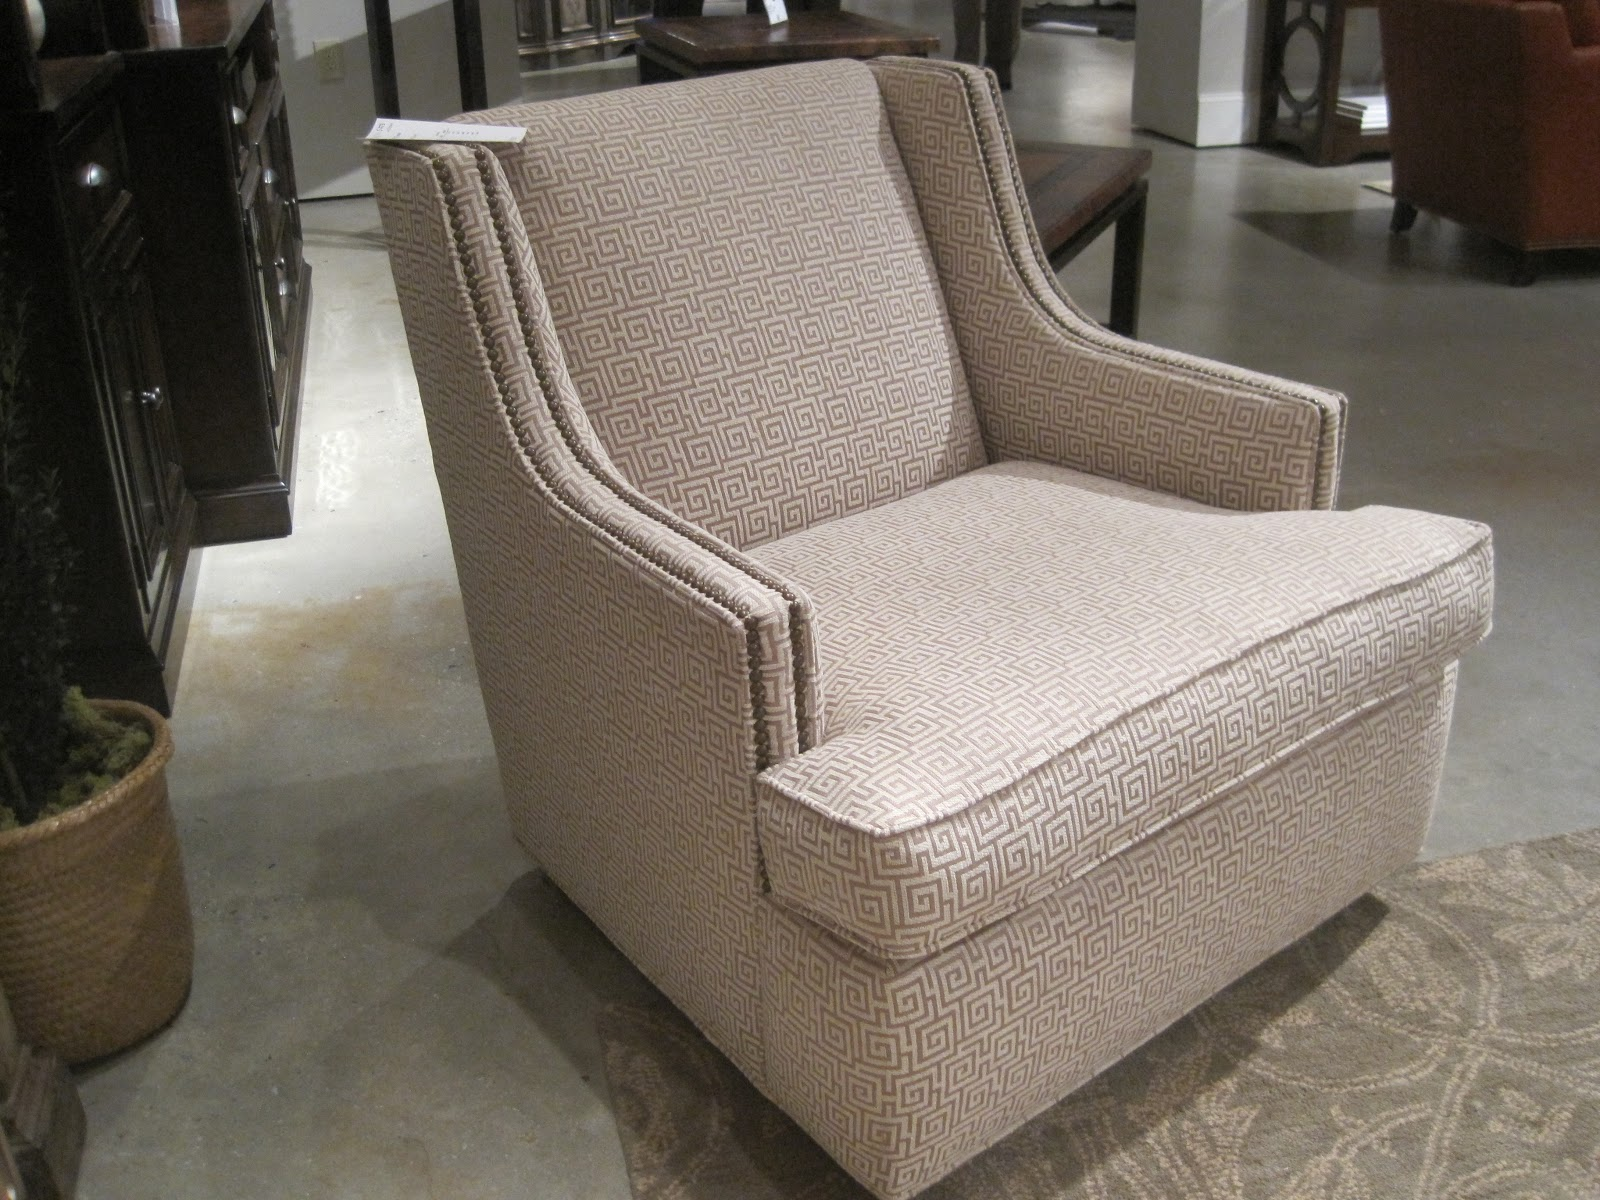 Swivel Chair In Spanish 4moms High Review Architect Design 10 21 12 28